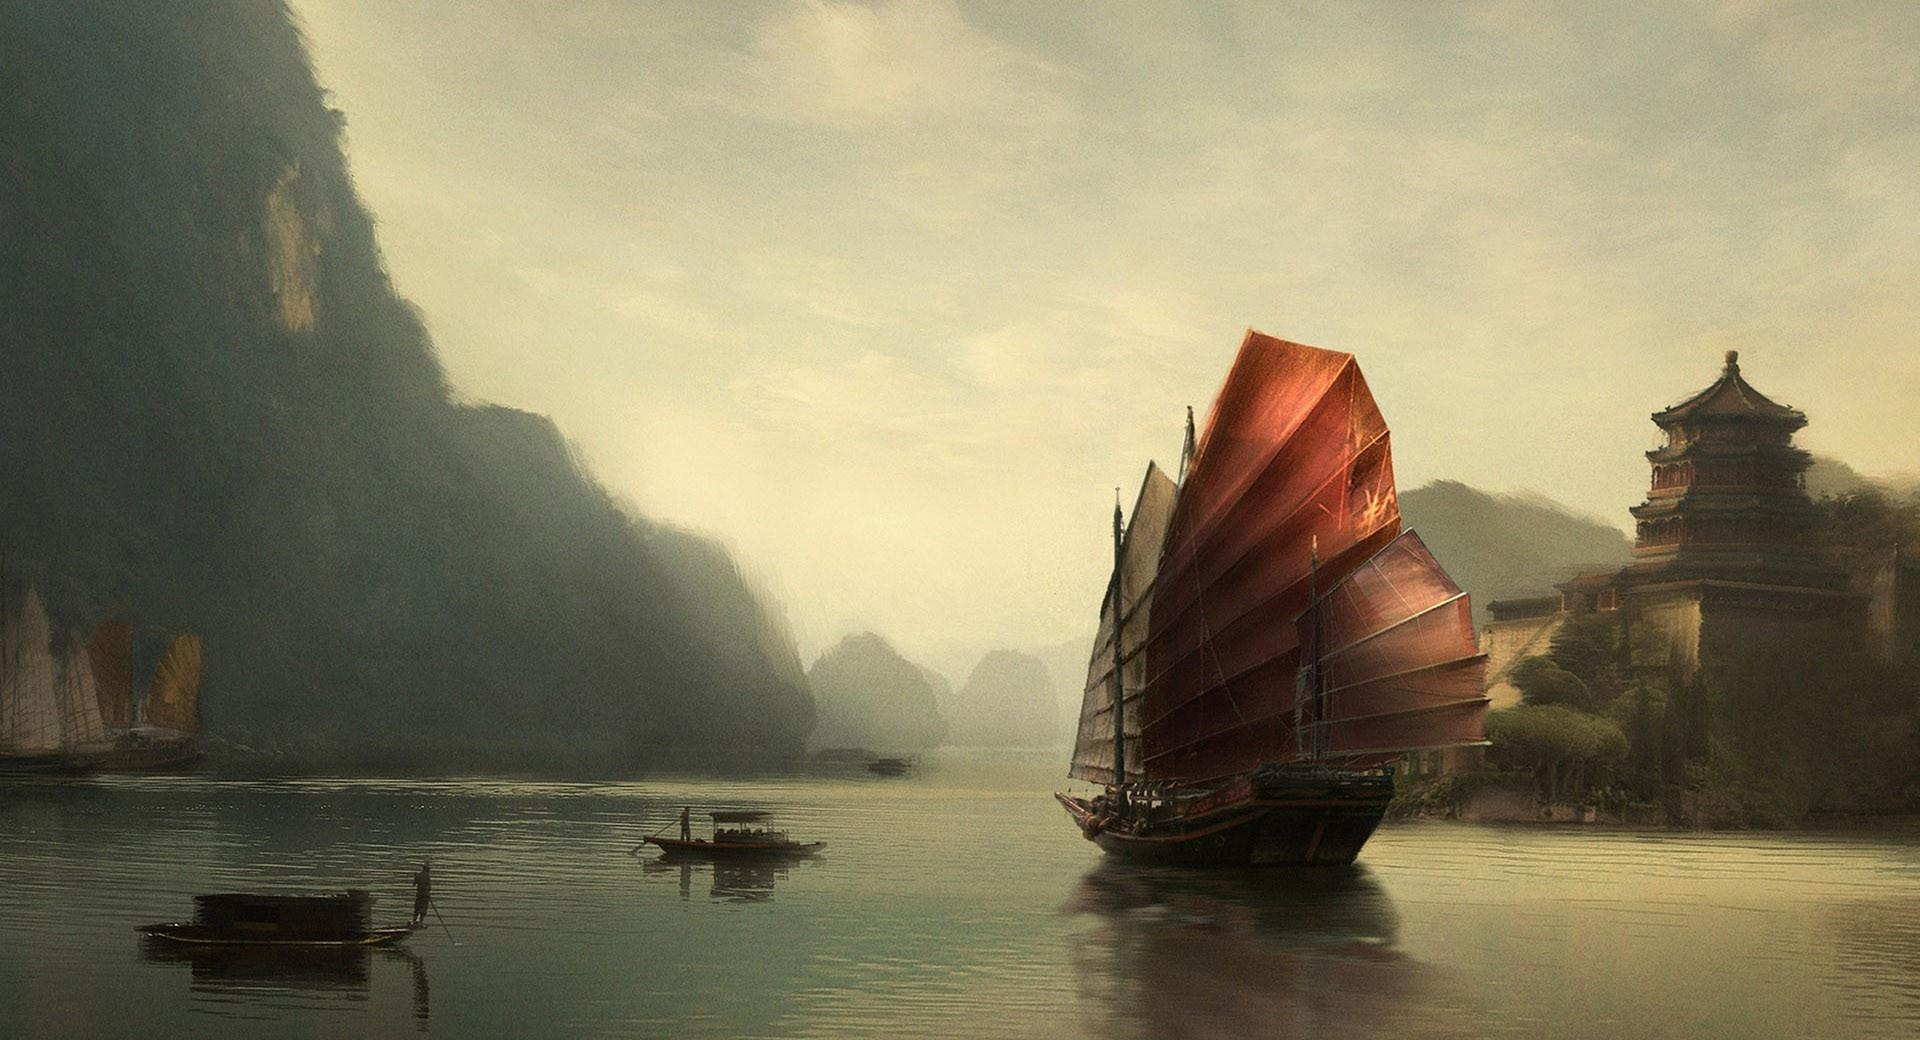 Junk Ship Chinese Painting wallpapers HD quality